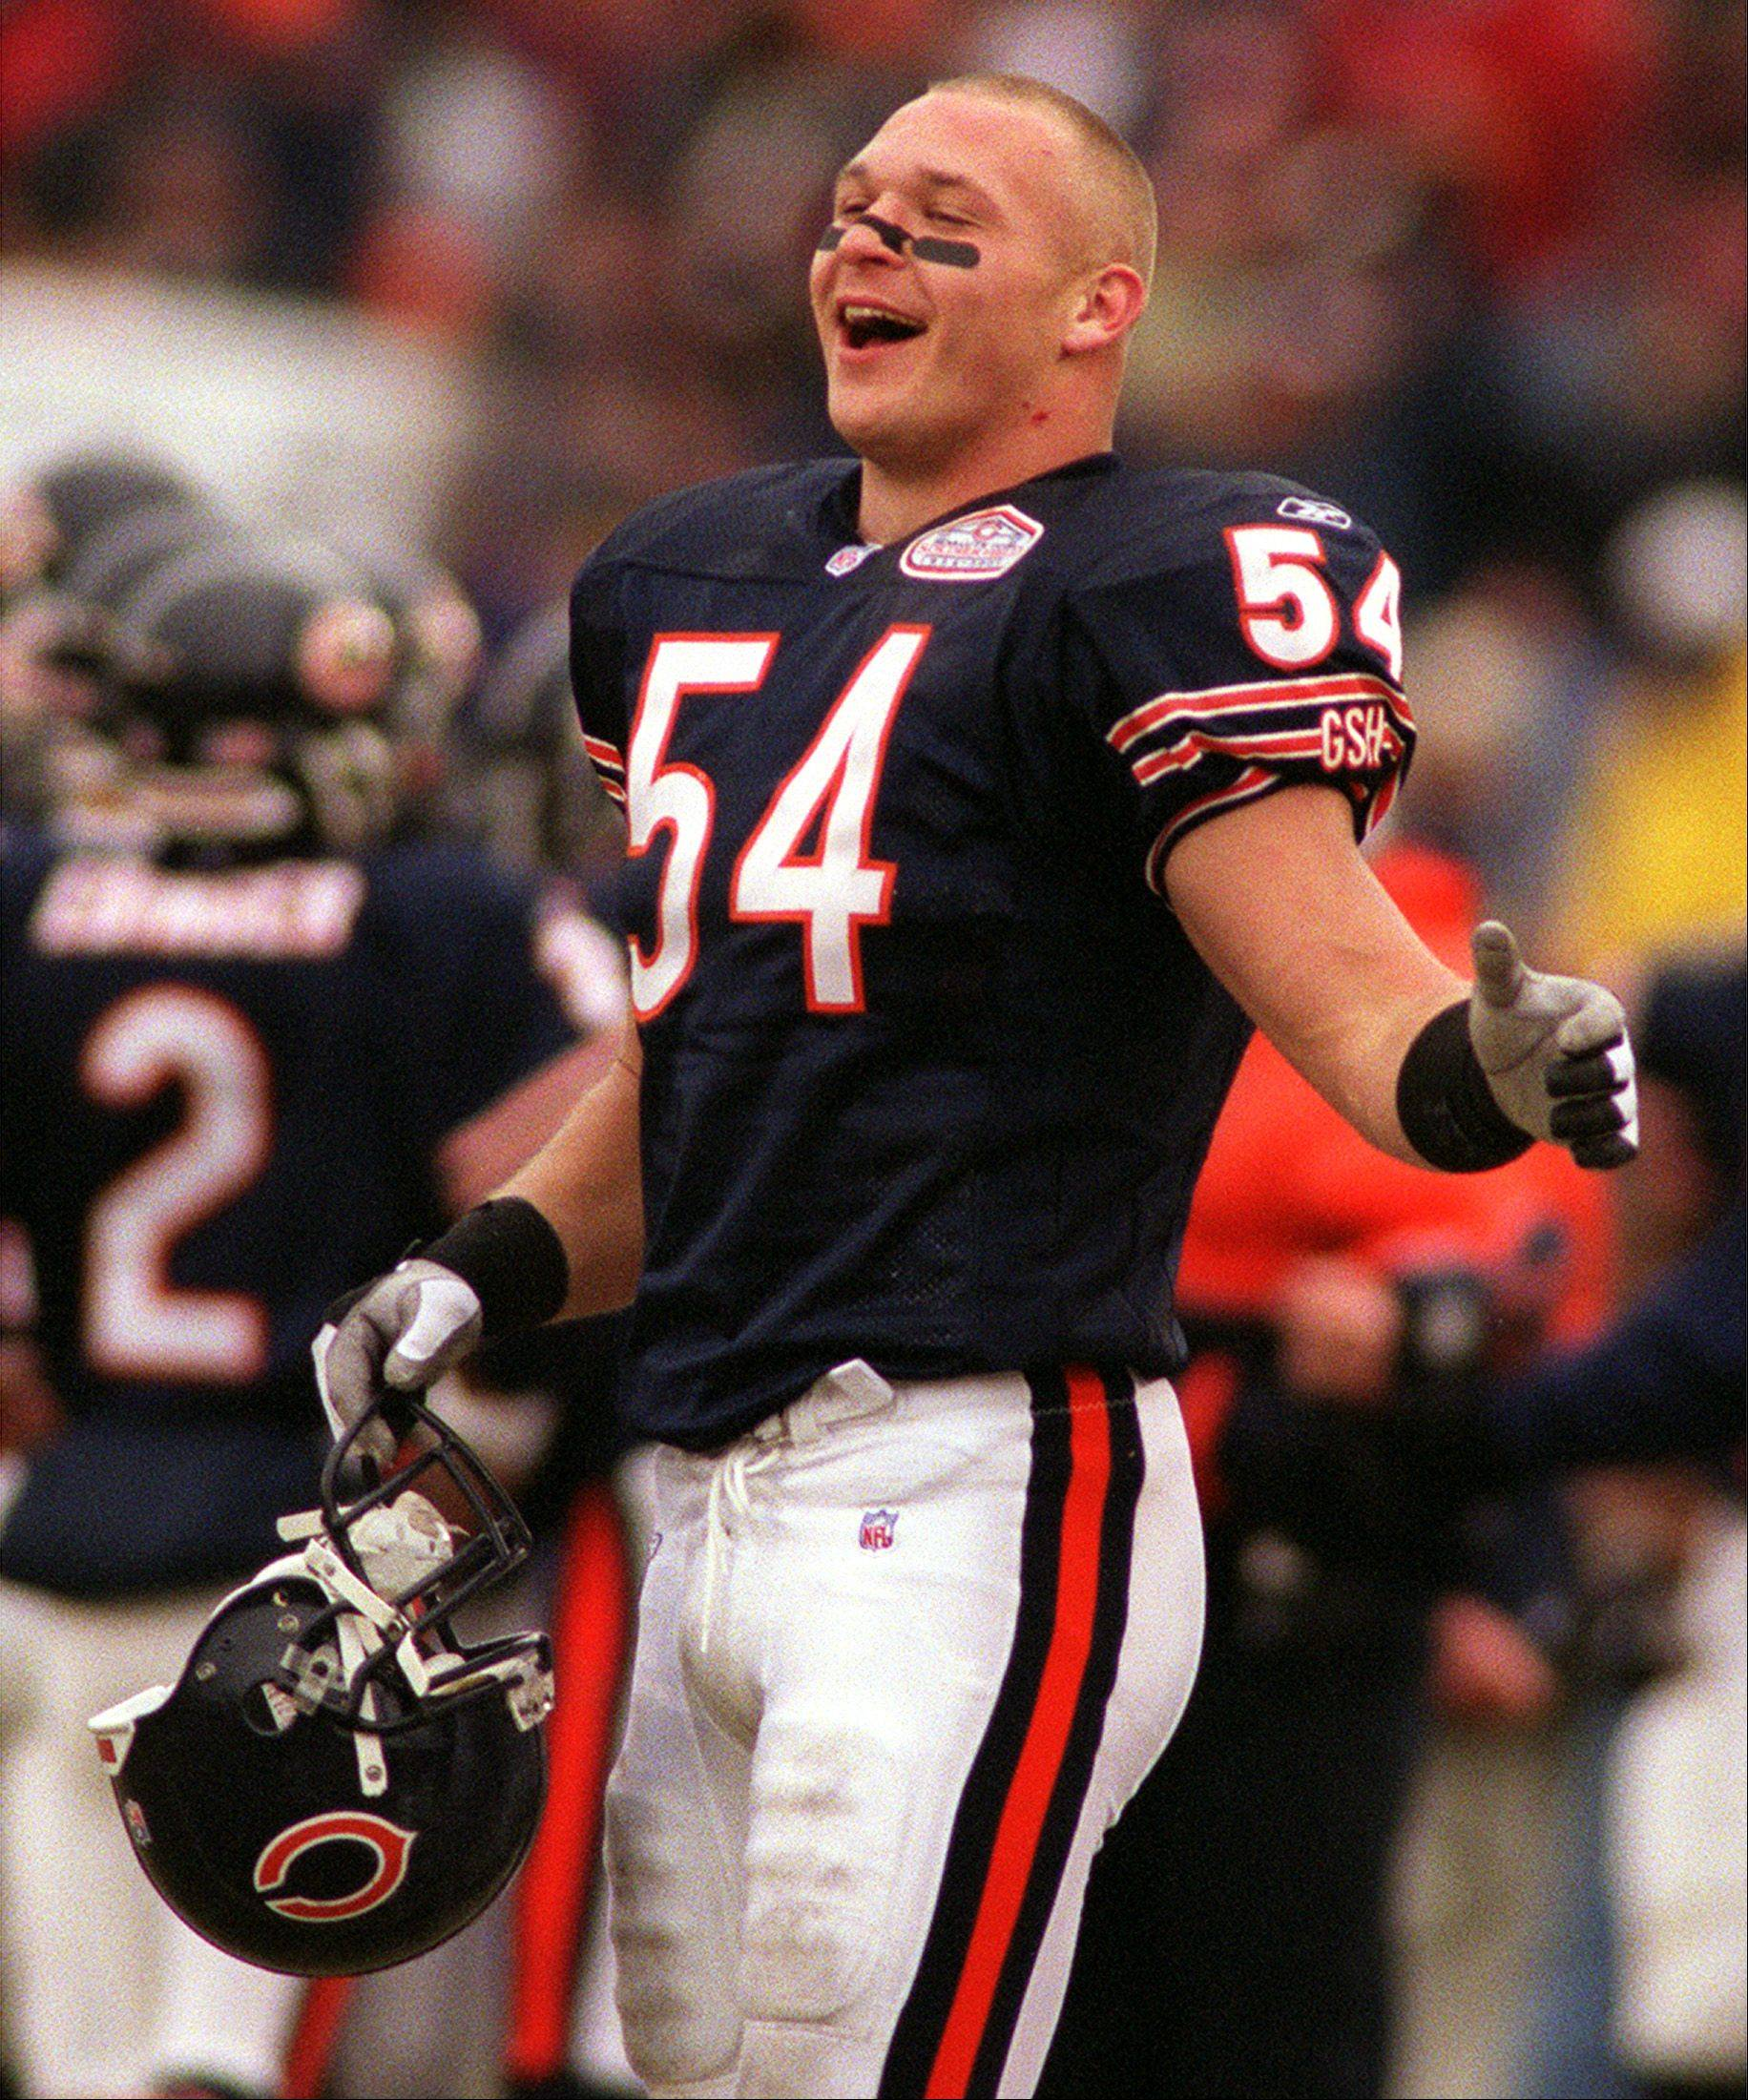 Brian Urlacher is all smiles after a Paul Edinger field goal against Jacksonville.